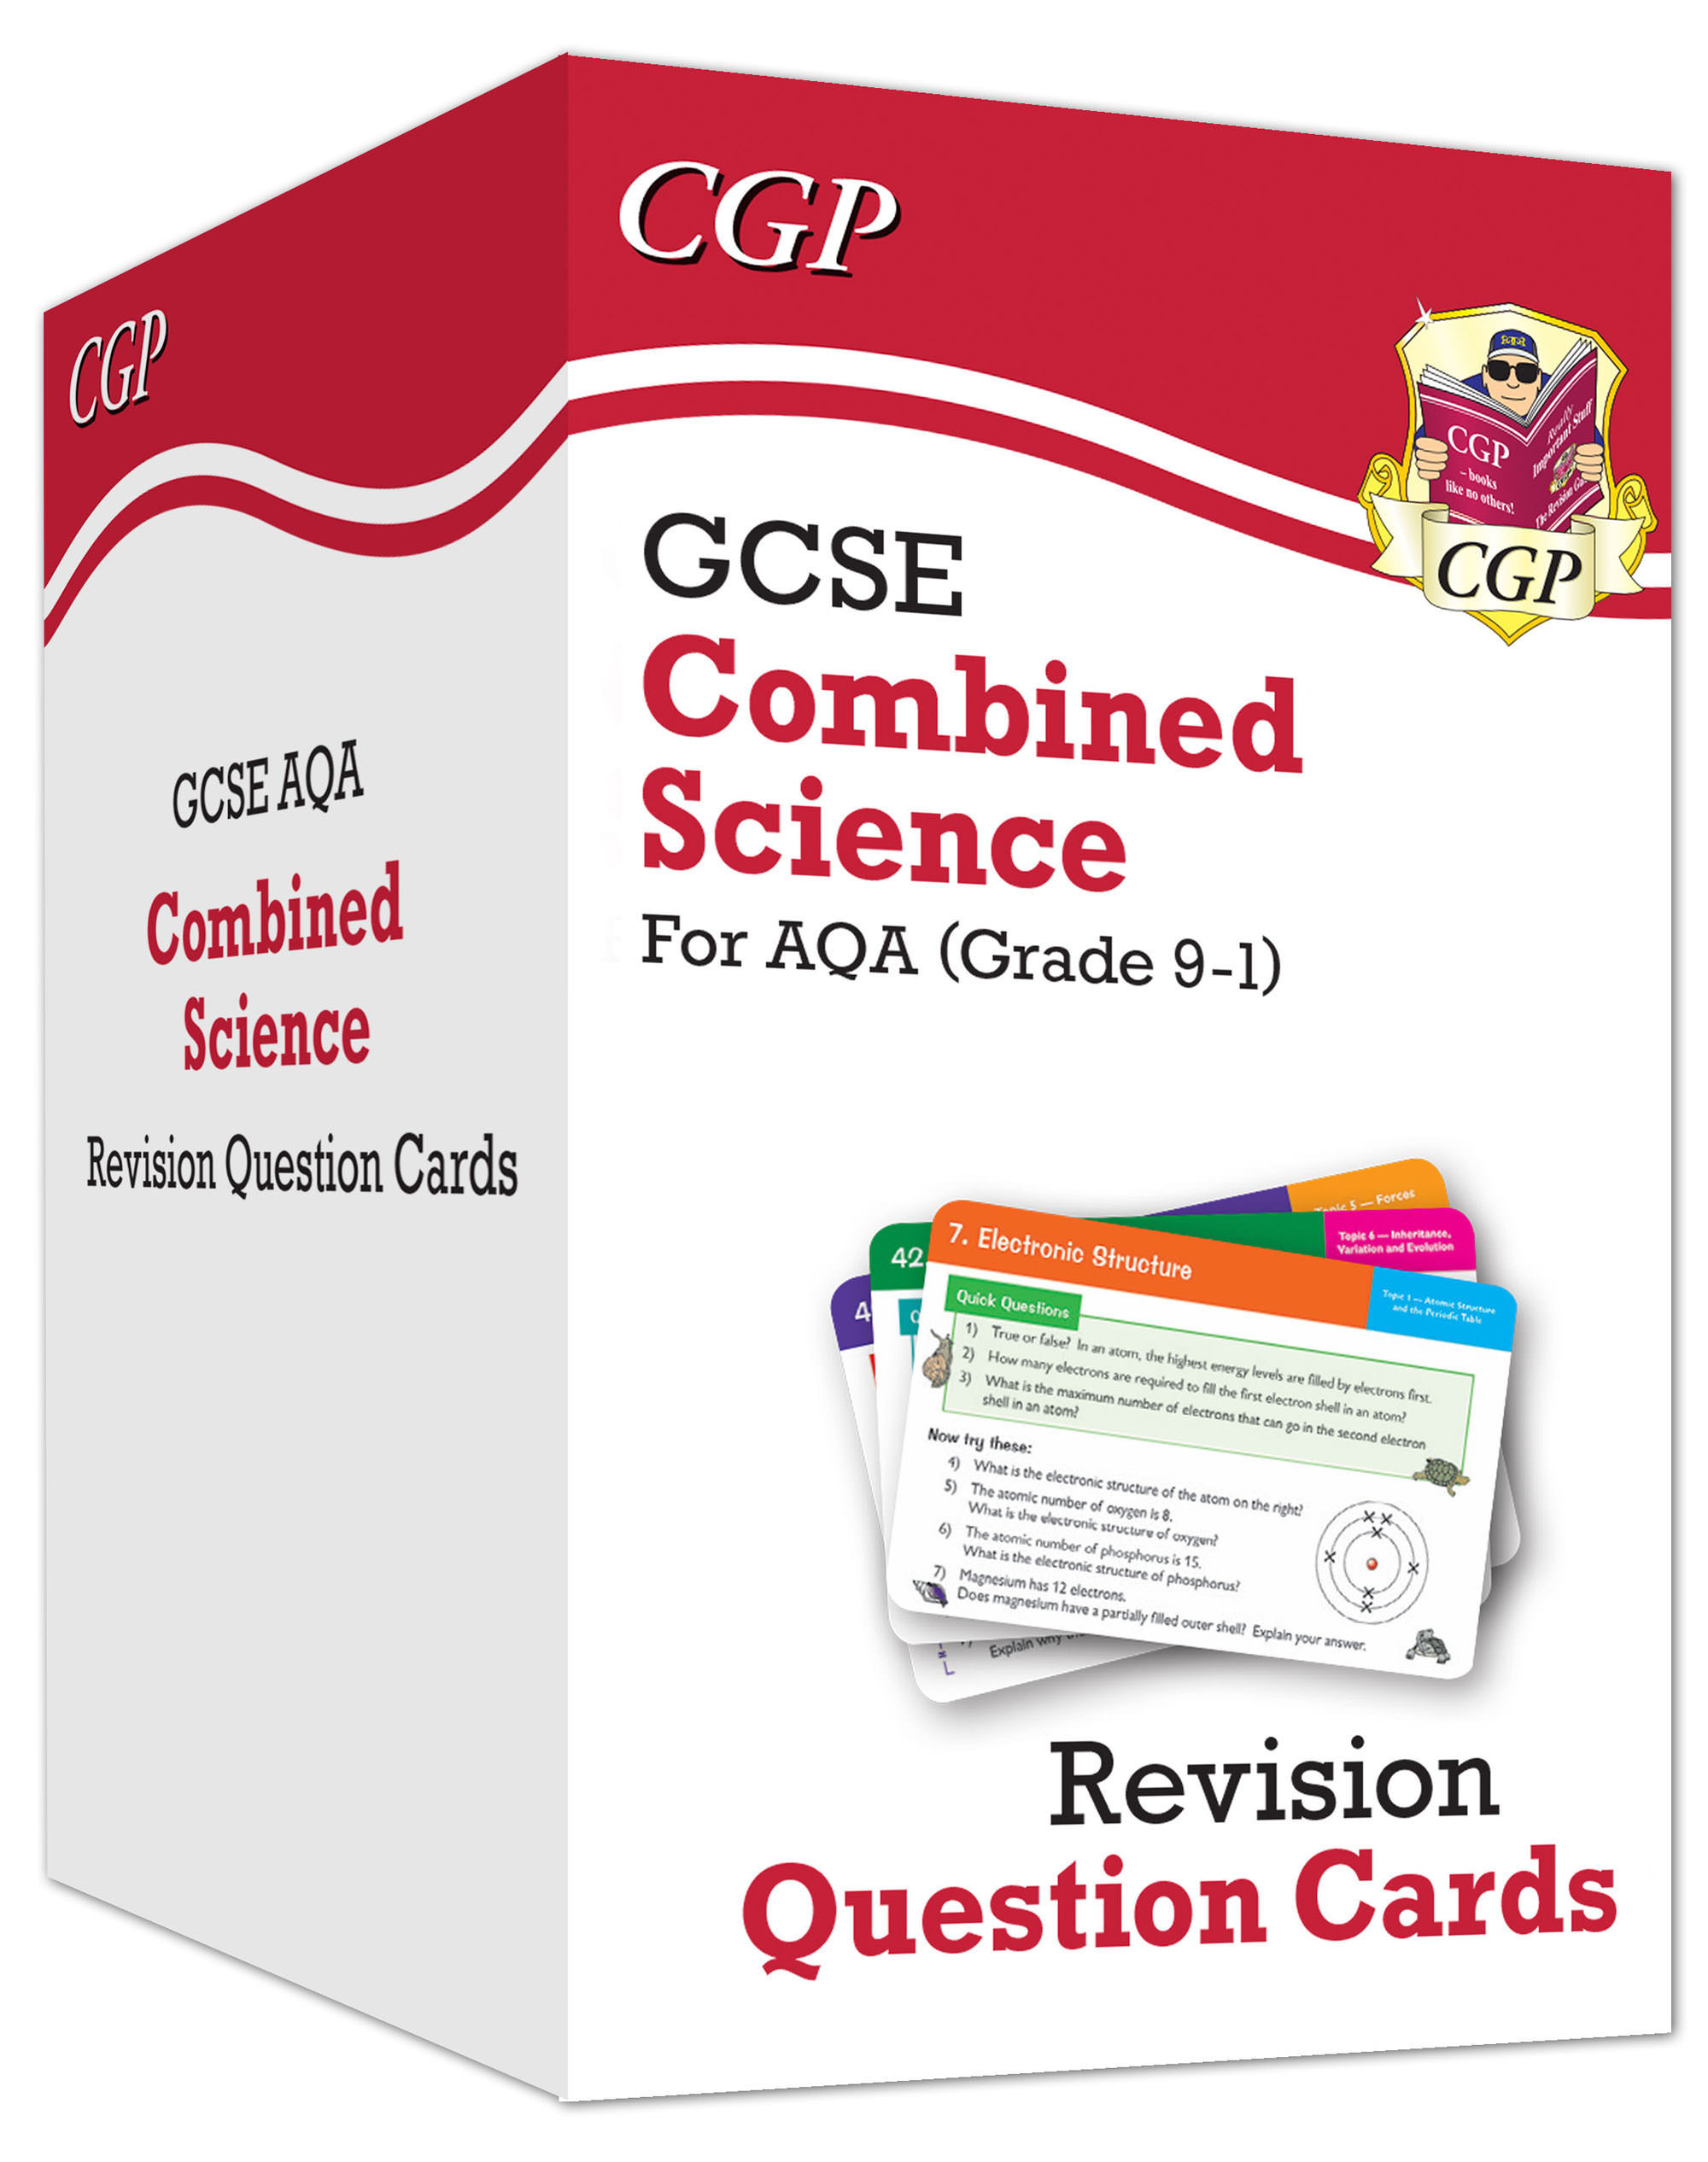 SCAF41DK - New 9-1 GCSE Combined Science AQA Revision Question Cards: All-in-one Biology, Chemistry